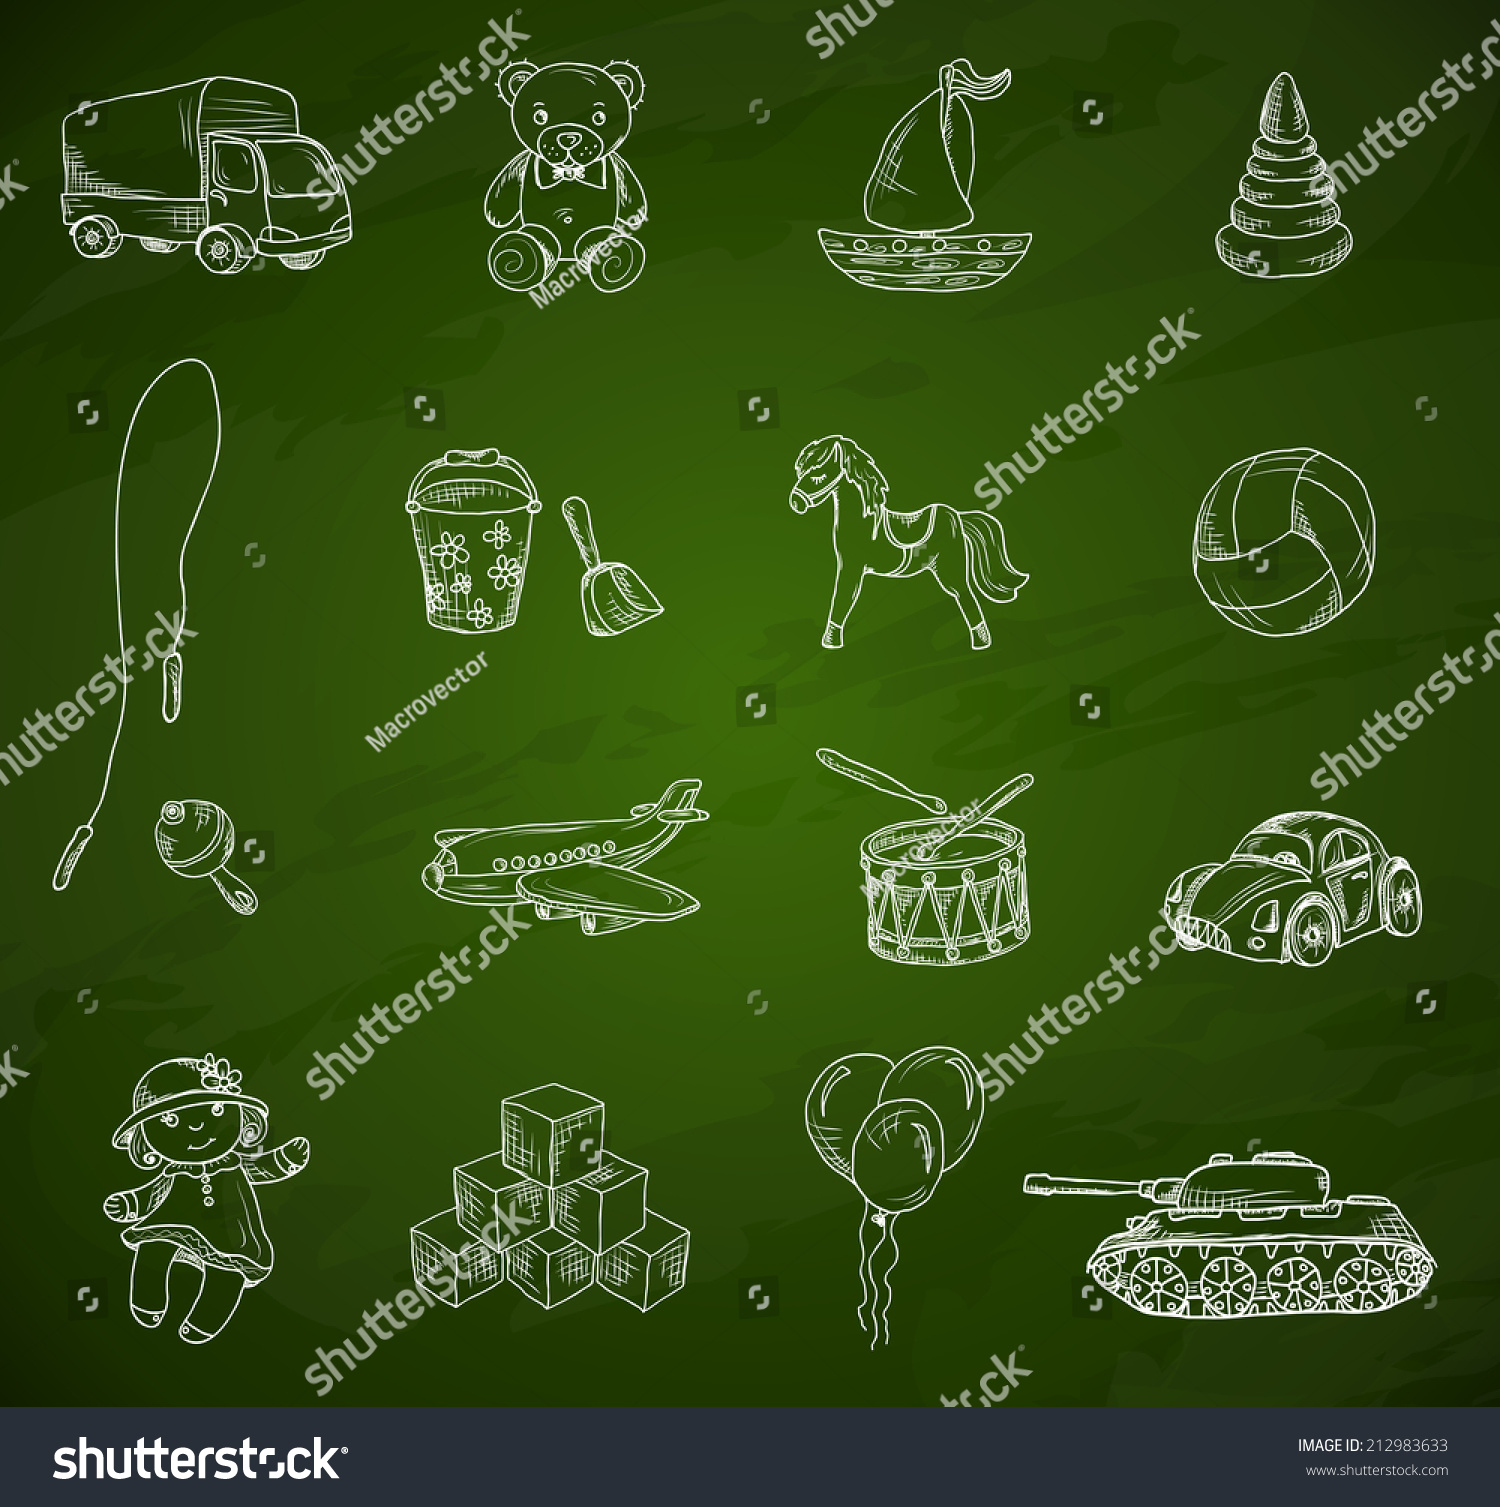 Vintage Kids Toys Sketch Icons Set Stock Vector